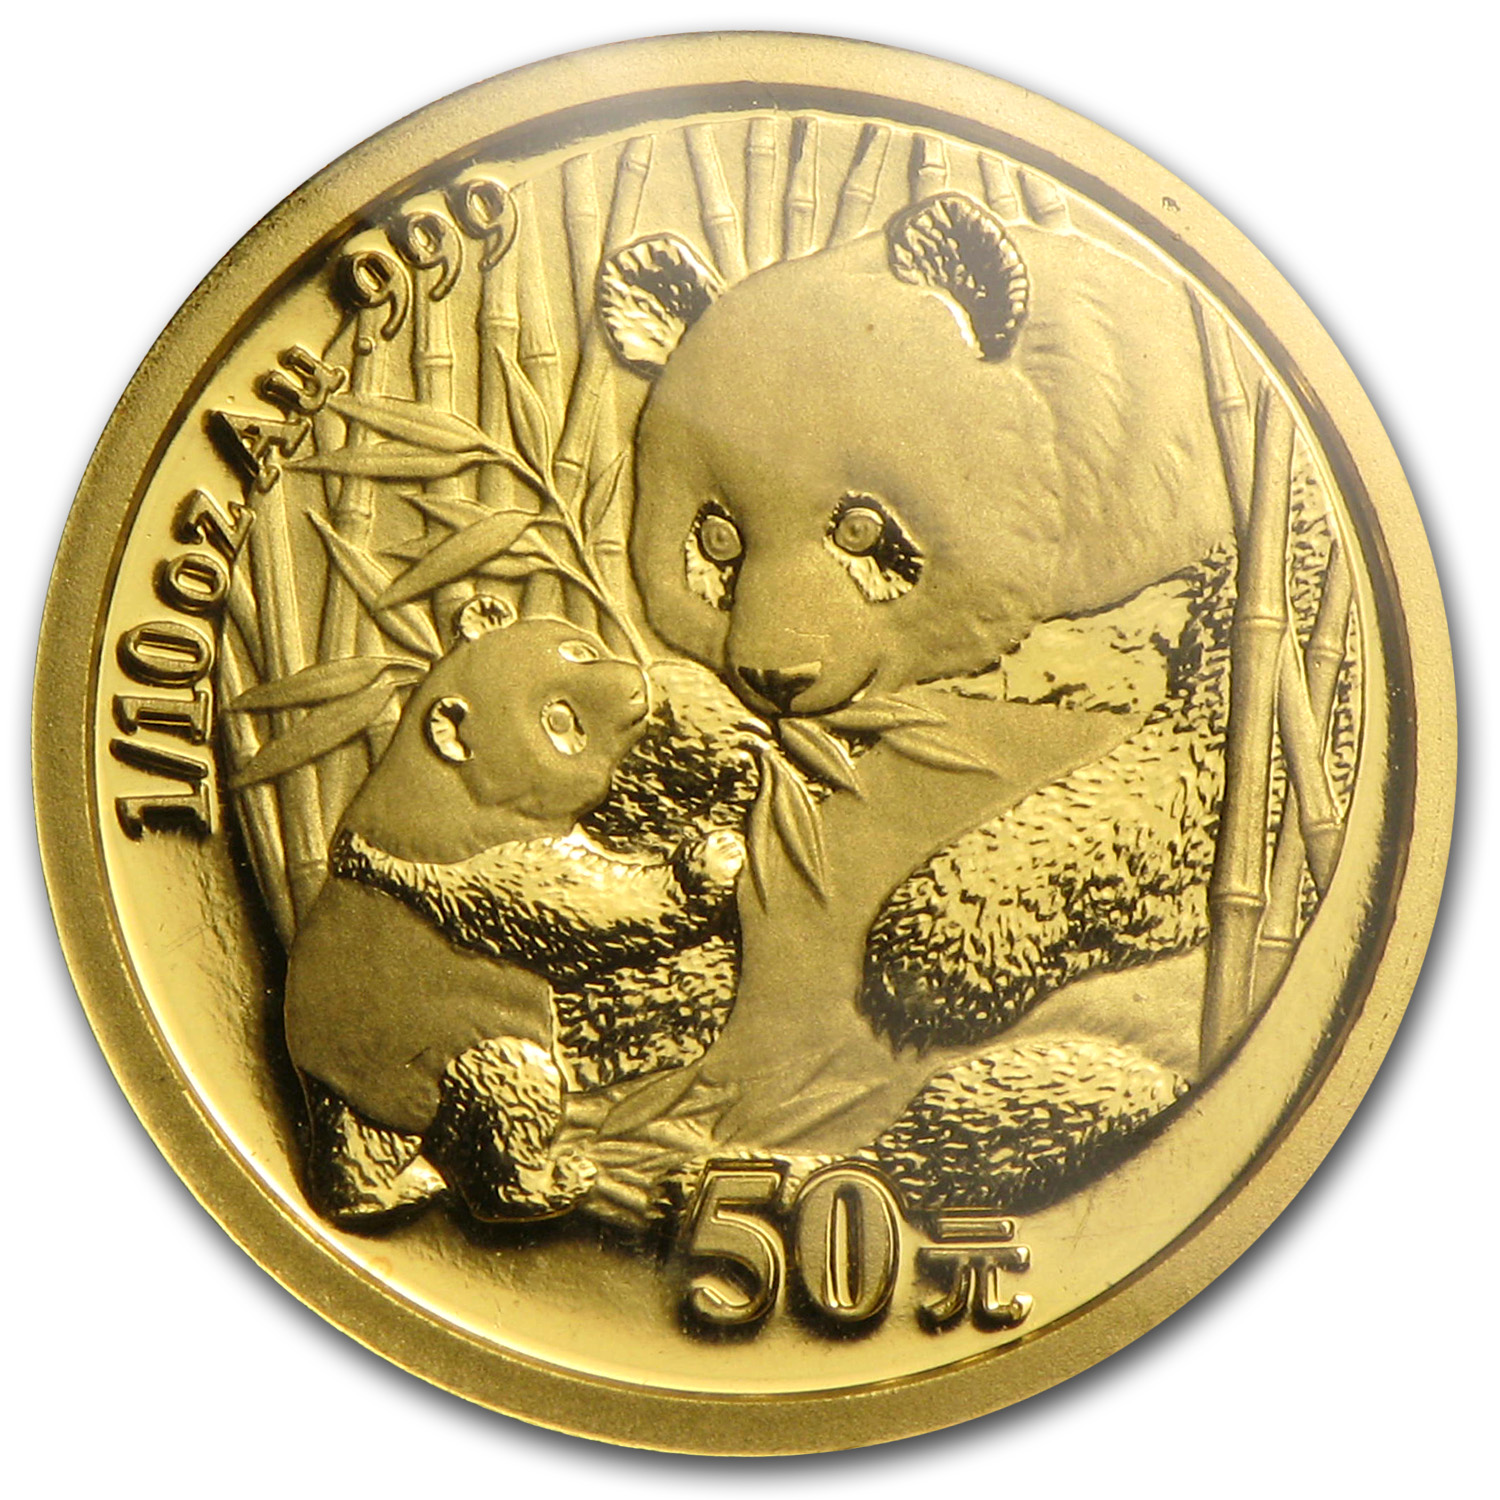 2005 China 1/10 oz Gold Panda BU (Sealed)